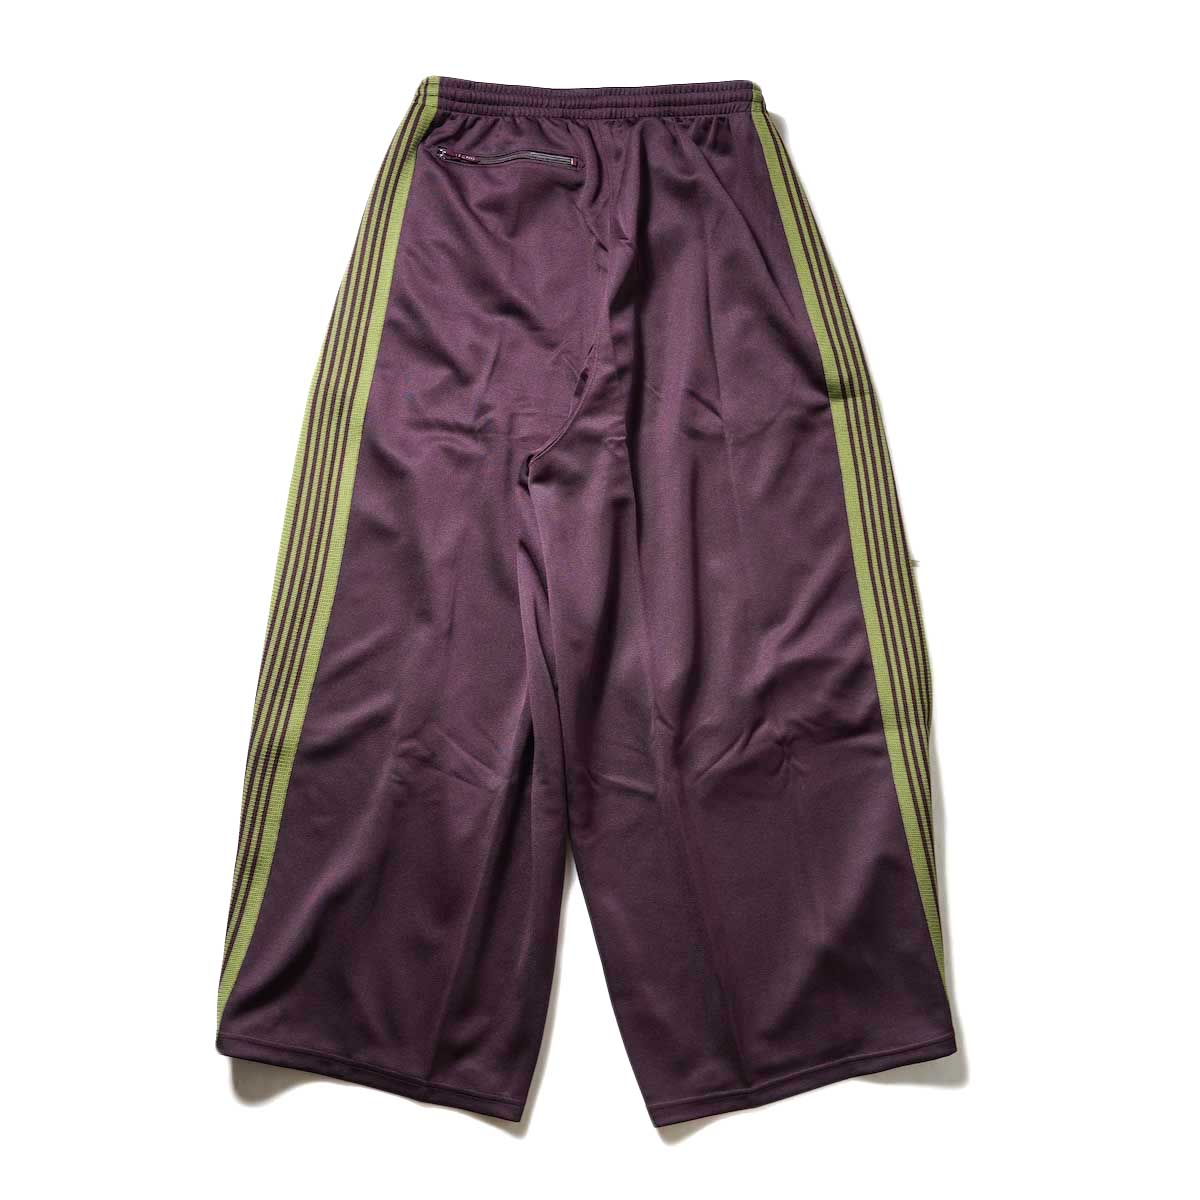 Needles / H.D. Track Pant -PolySmooth (Maroon)背面